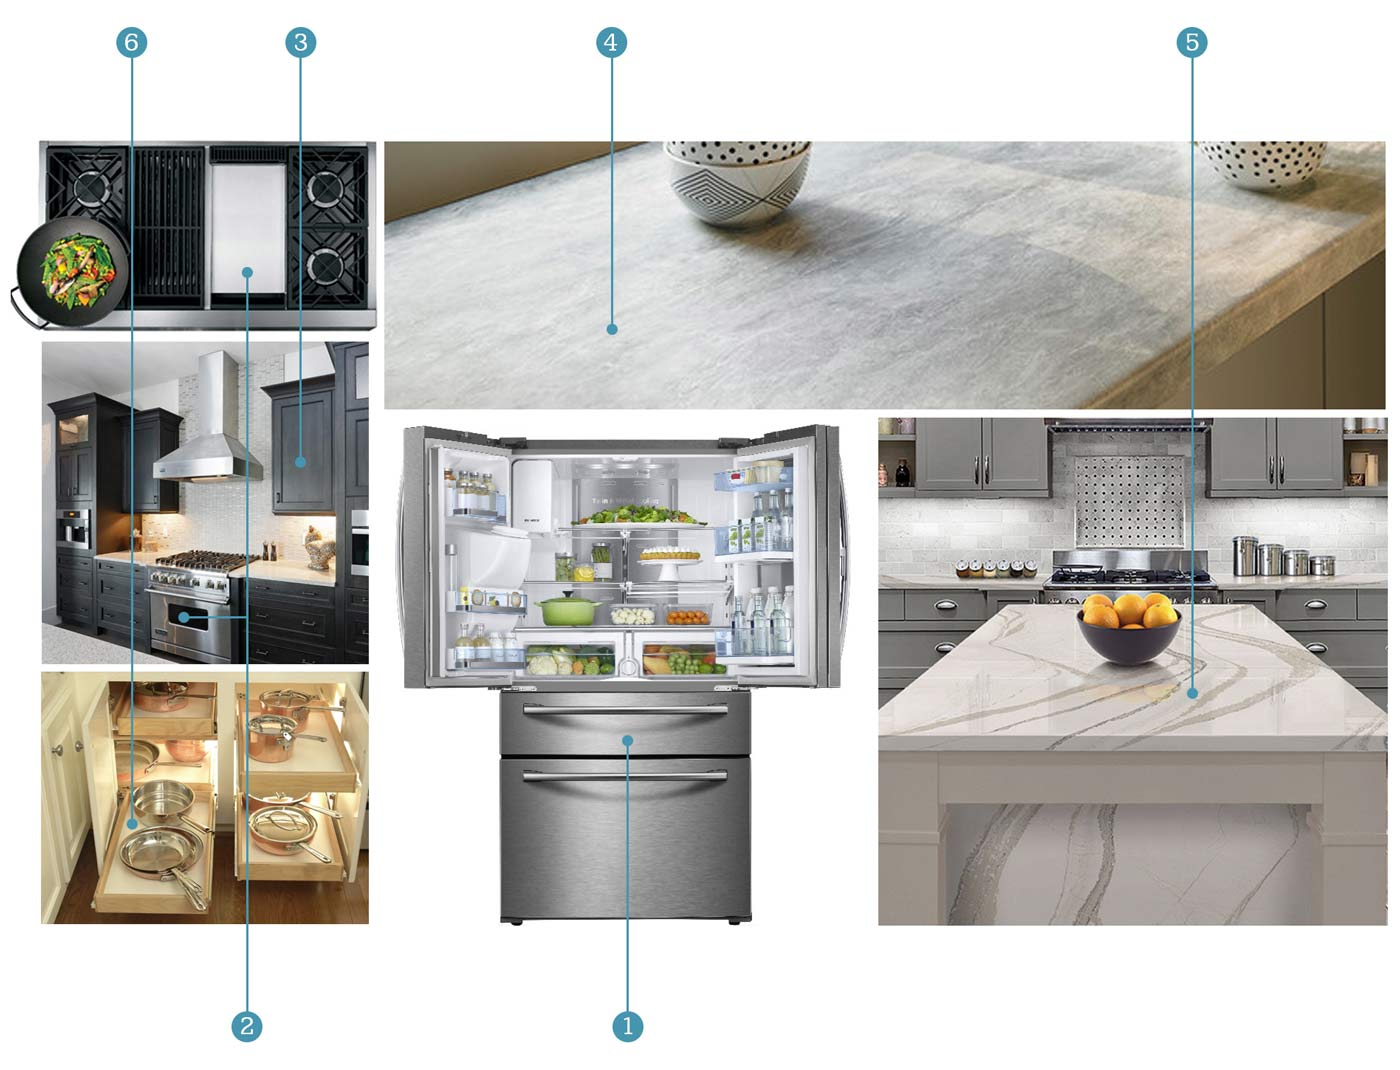 Houzz Poll for Kitchen-Splurge